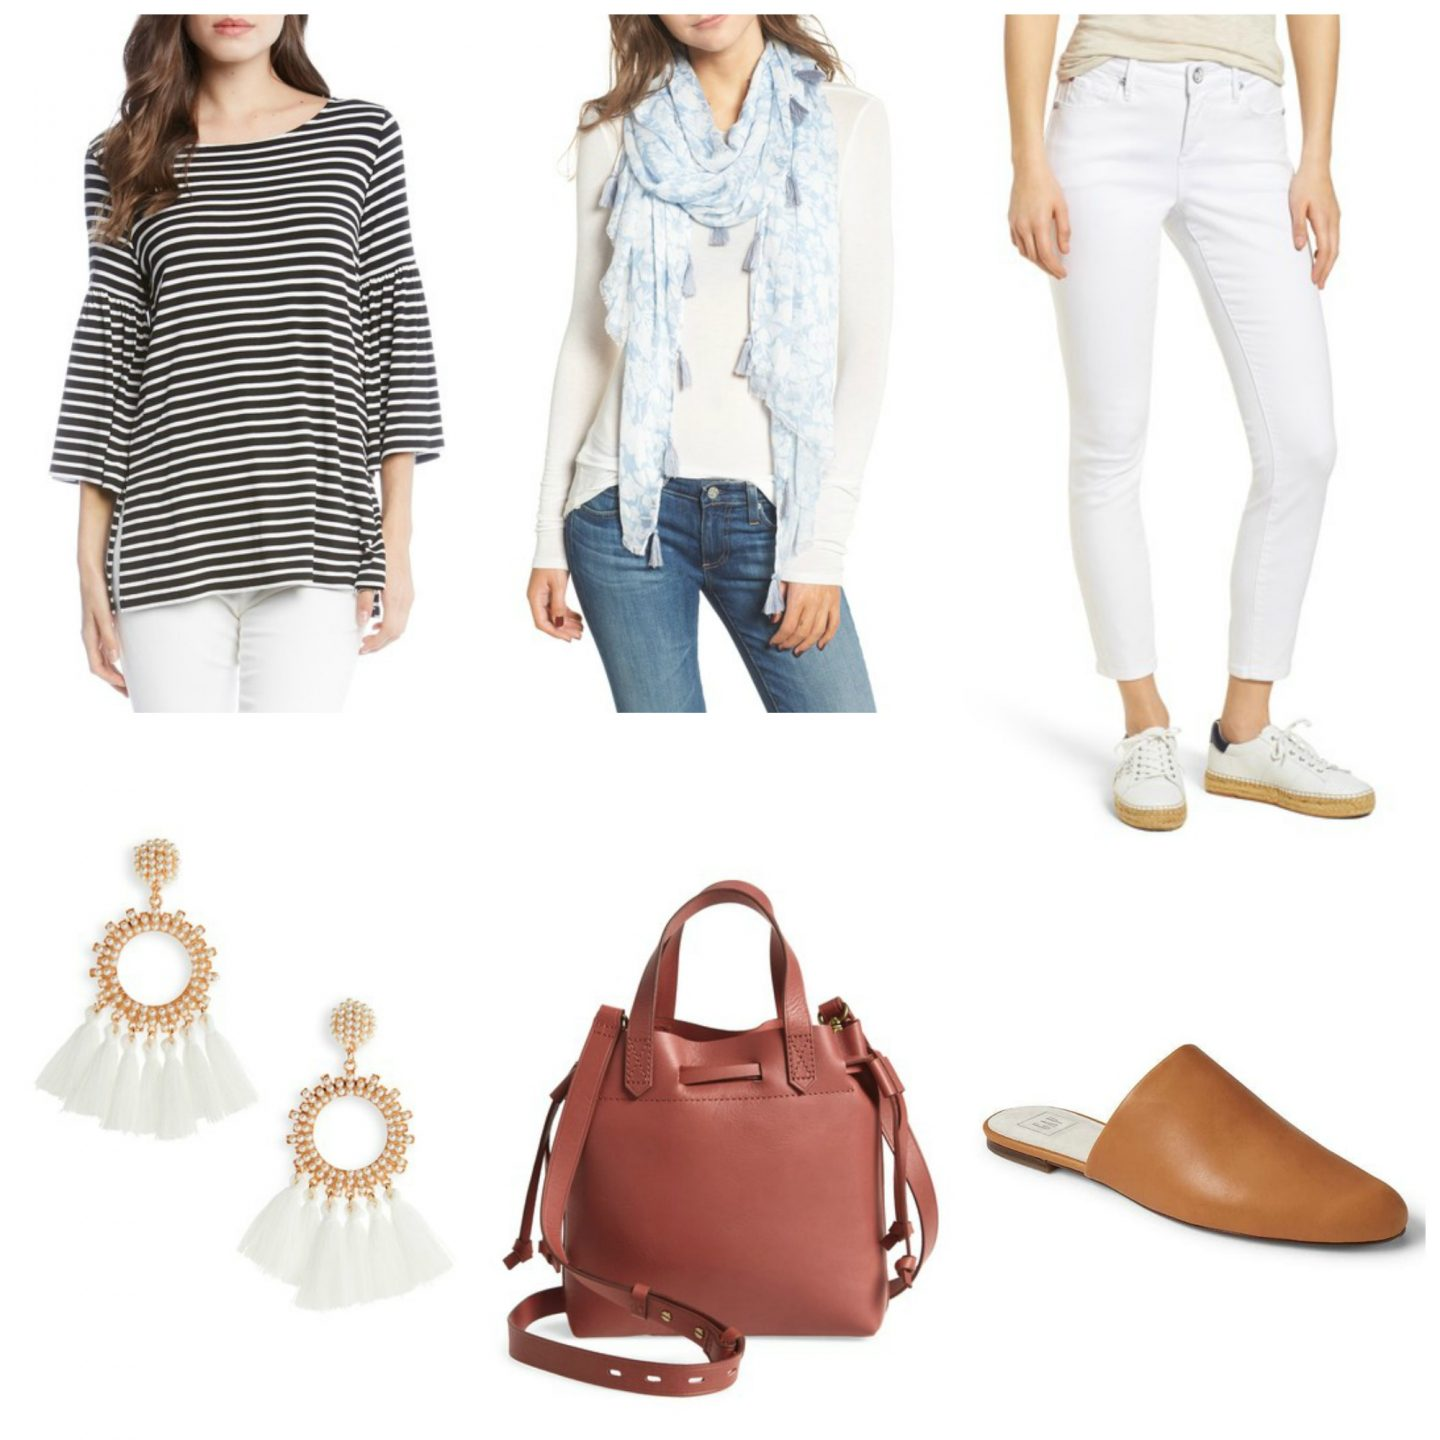 Tuesday's Cravings: Spring Outfit